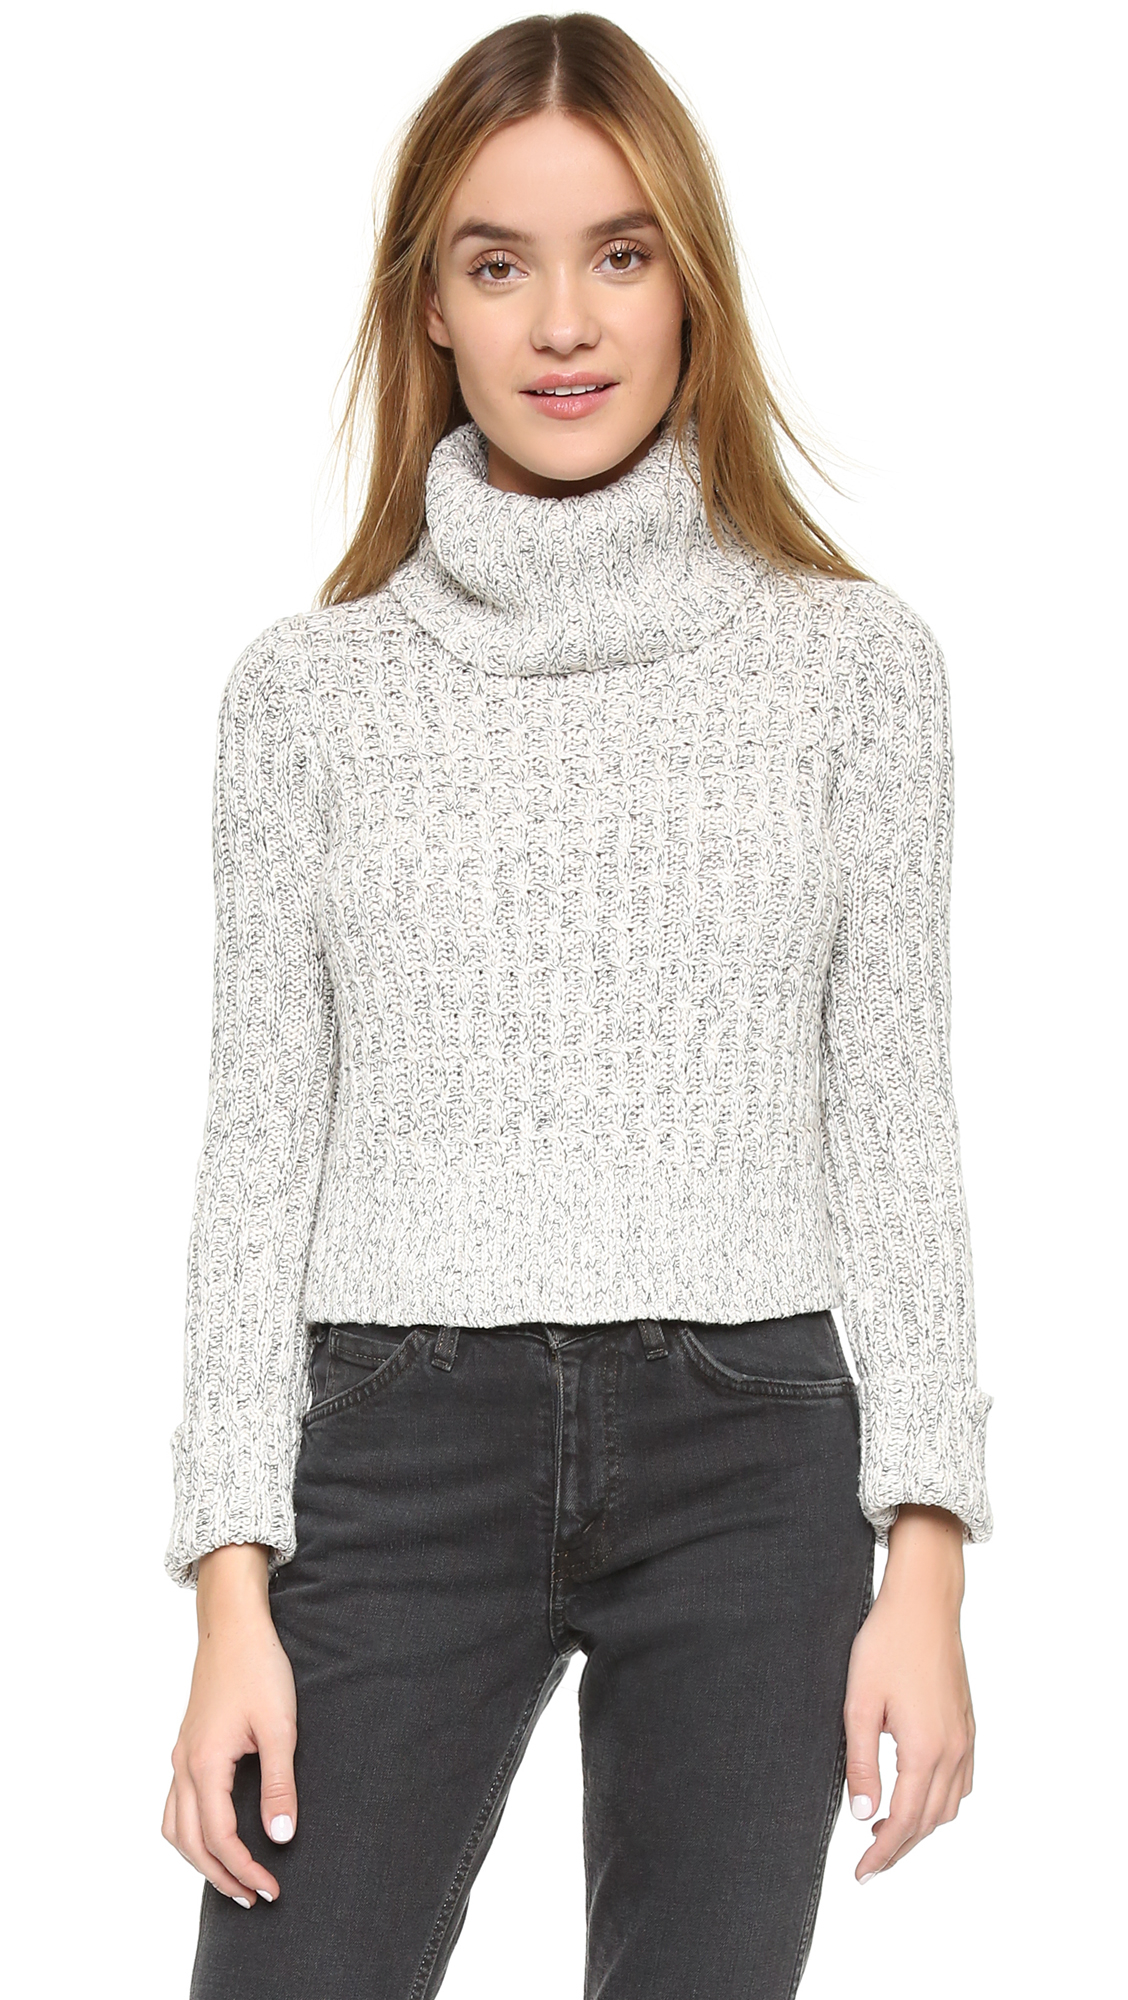 Lyst - Free People Twisted Turtleneck Sweater in White